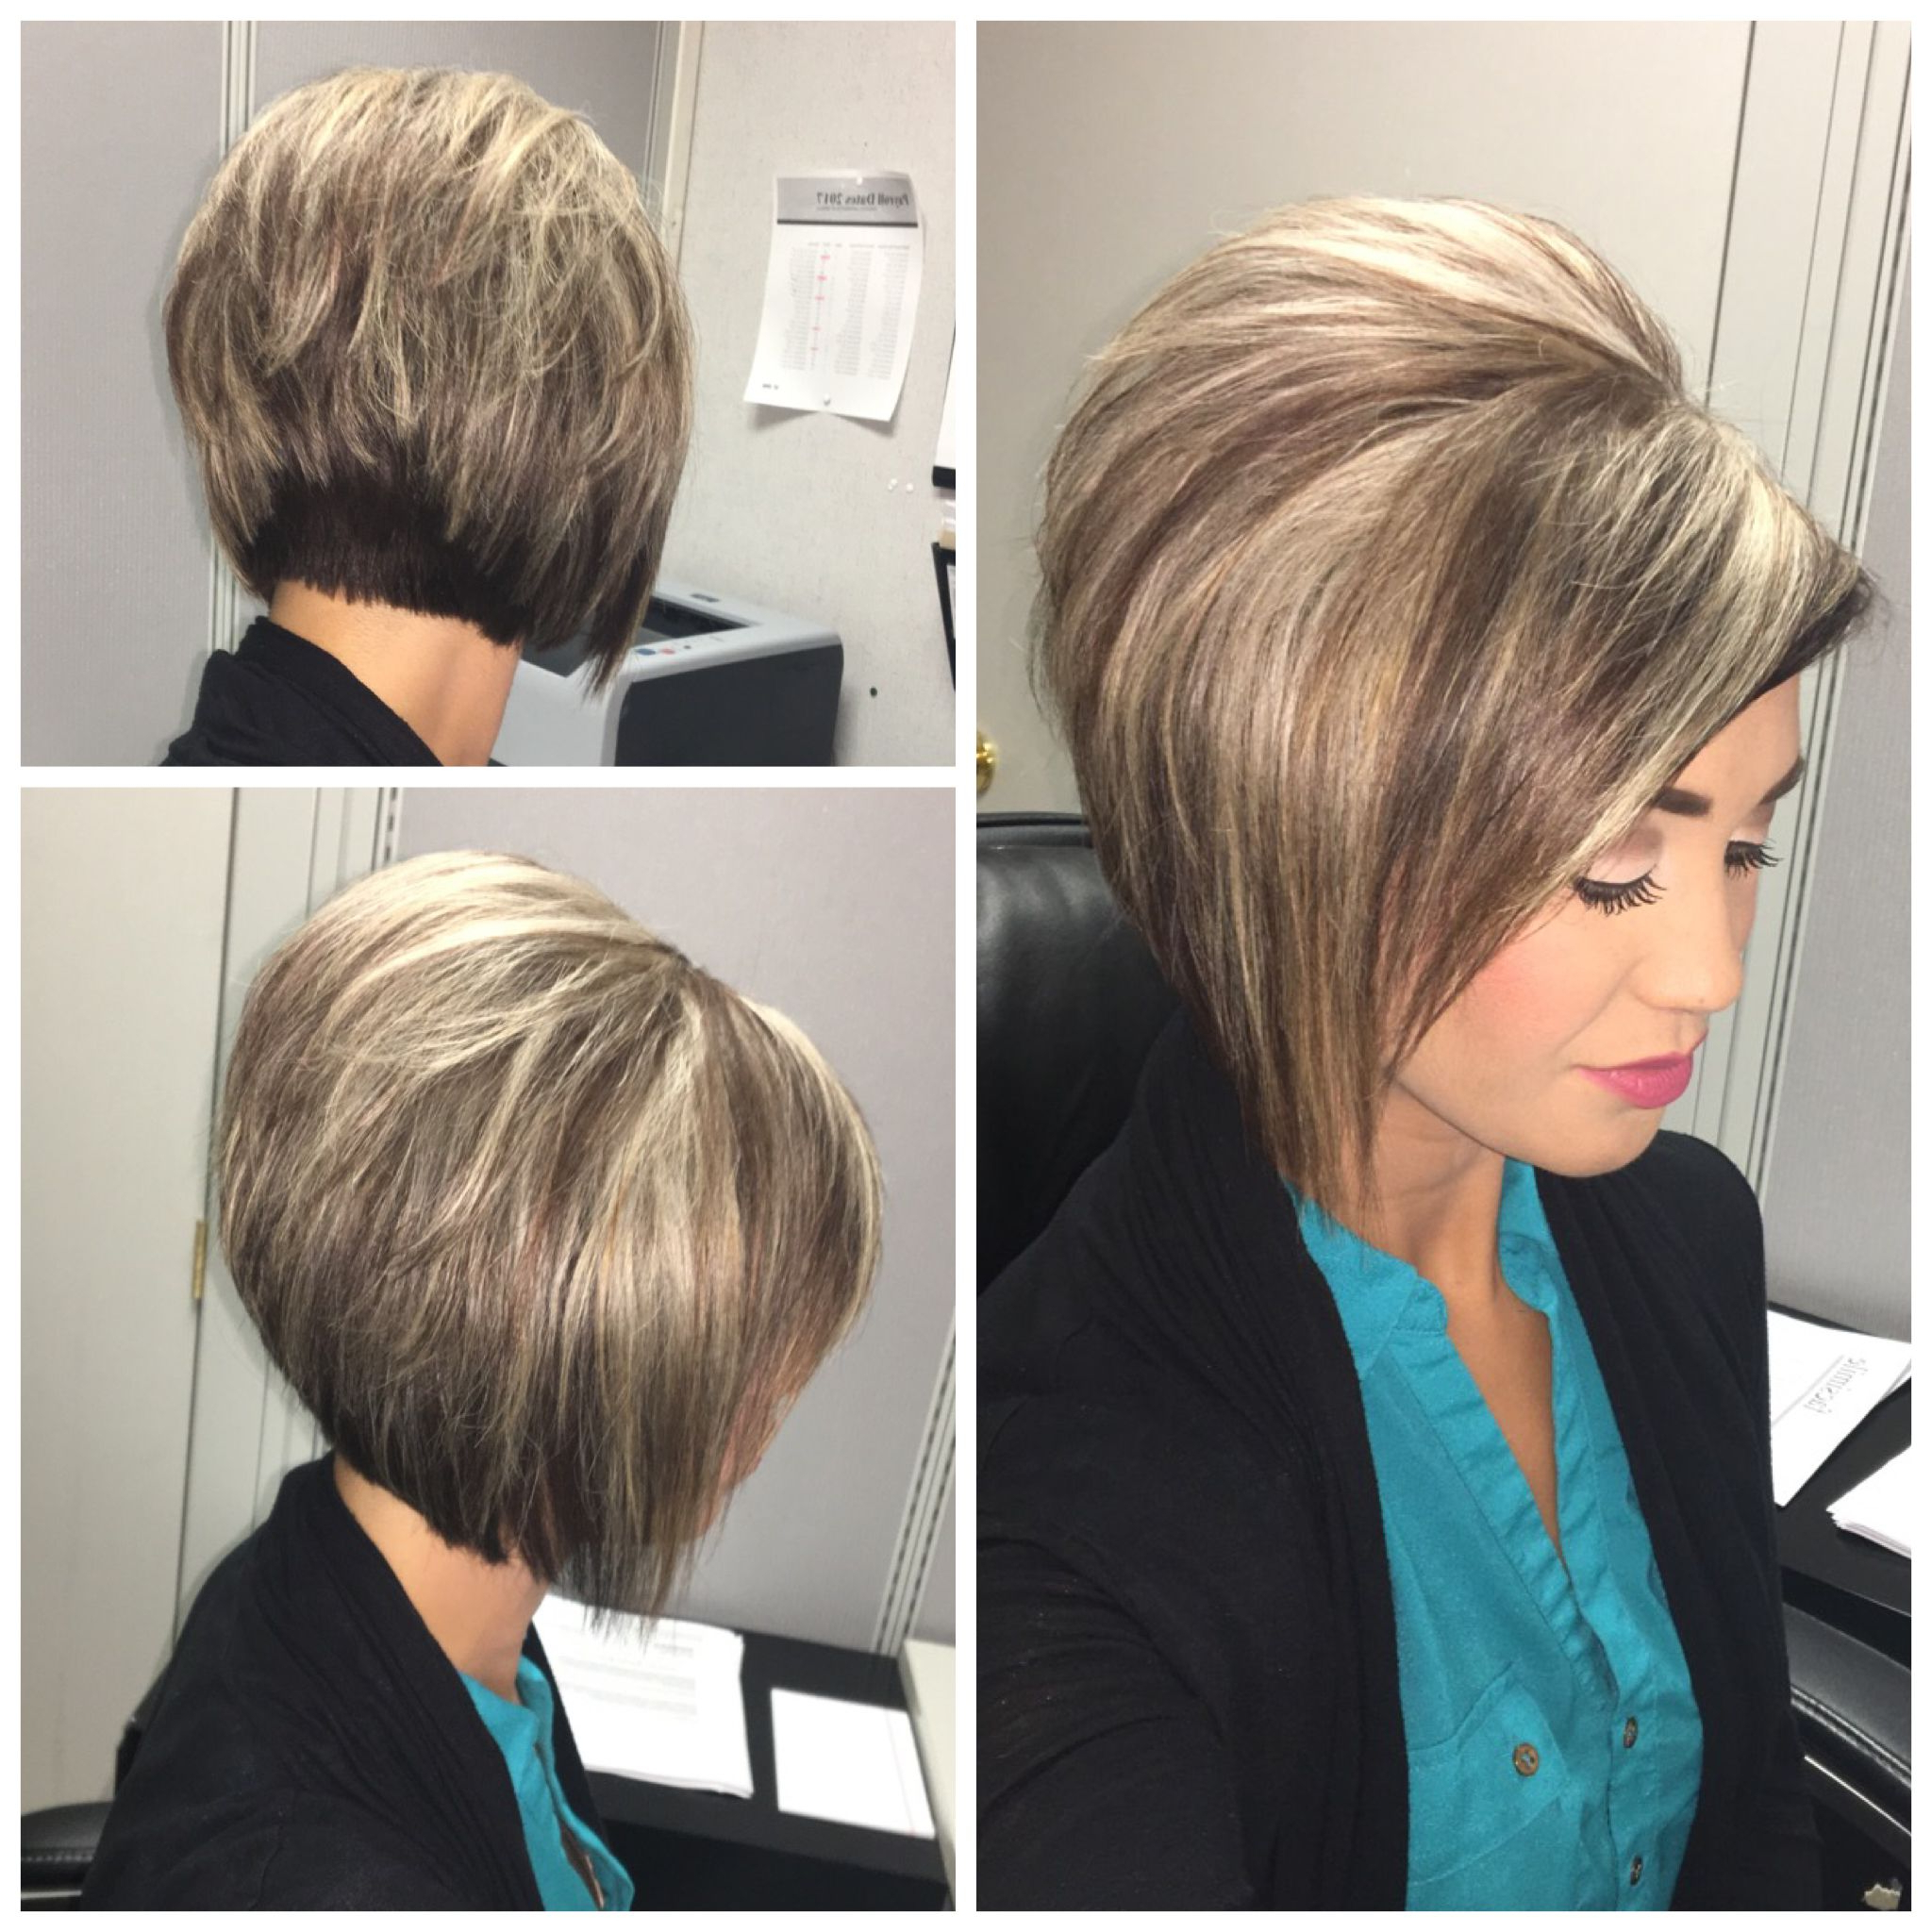 Stacked Bob Haircut With Blonde Highlights On Dark Hair | Hair In With Regard To Highlighted Pixie Bob Hairstyles With Long Bangs (View 15 of 20)